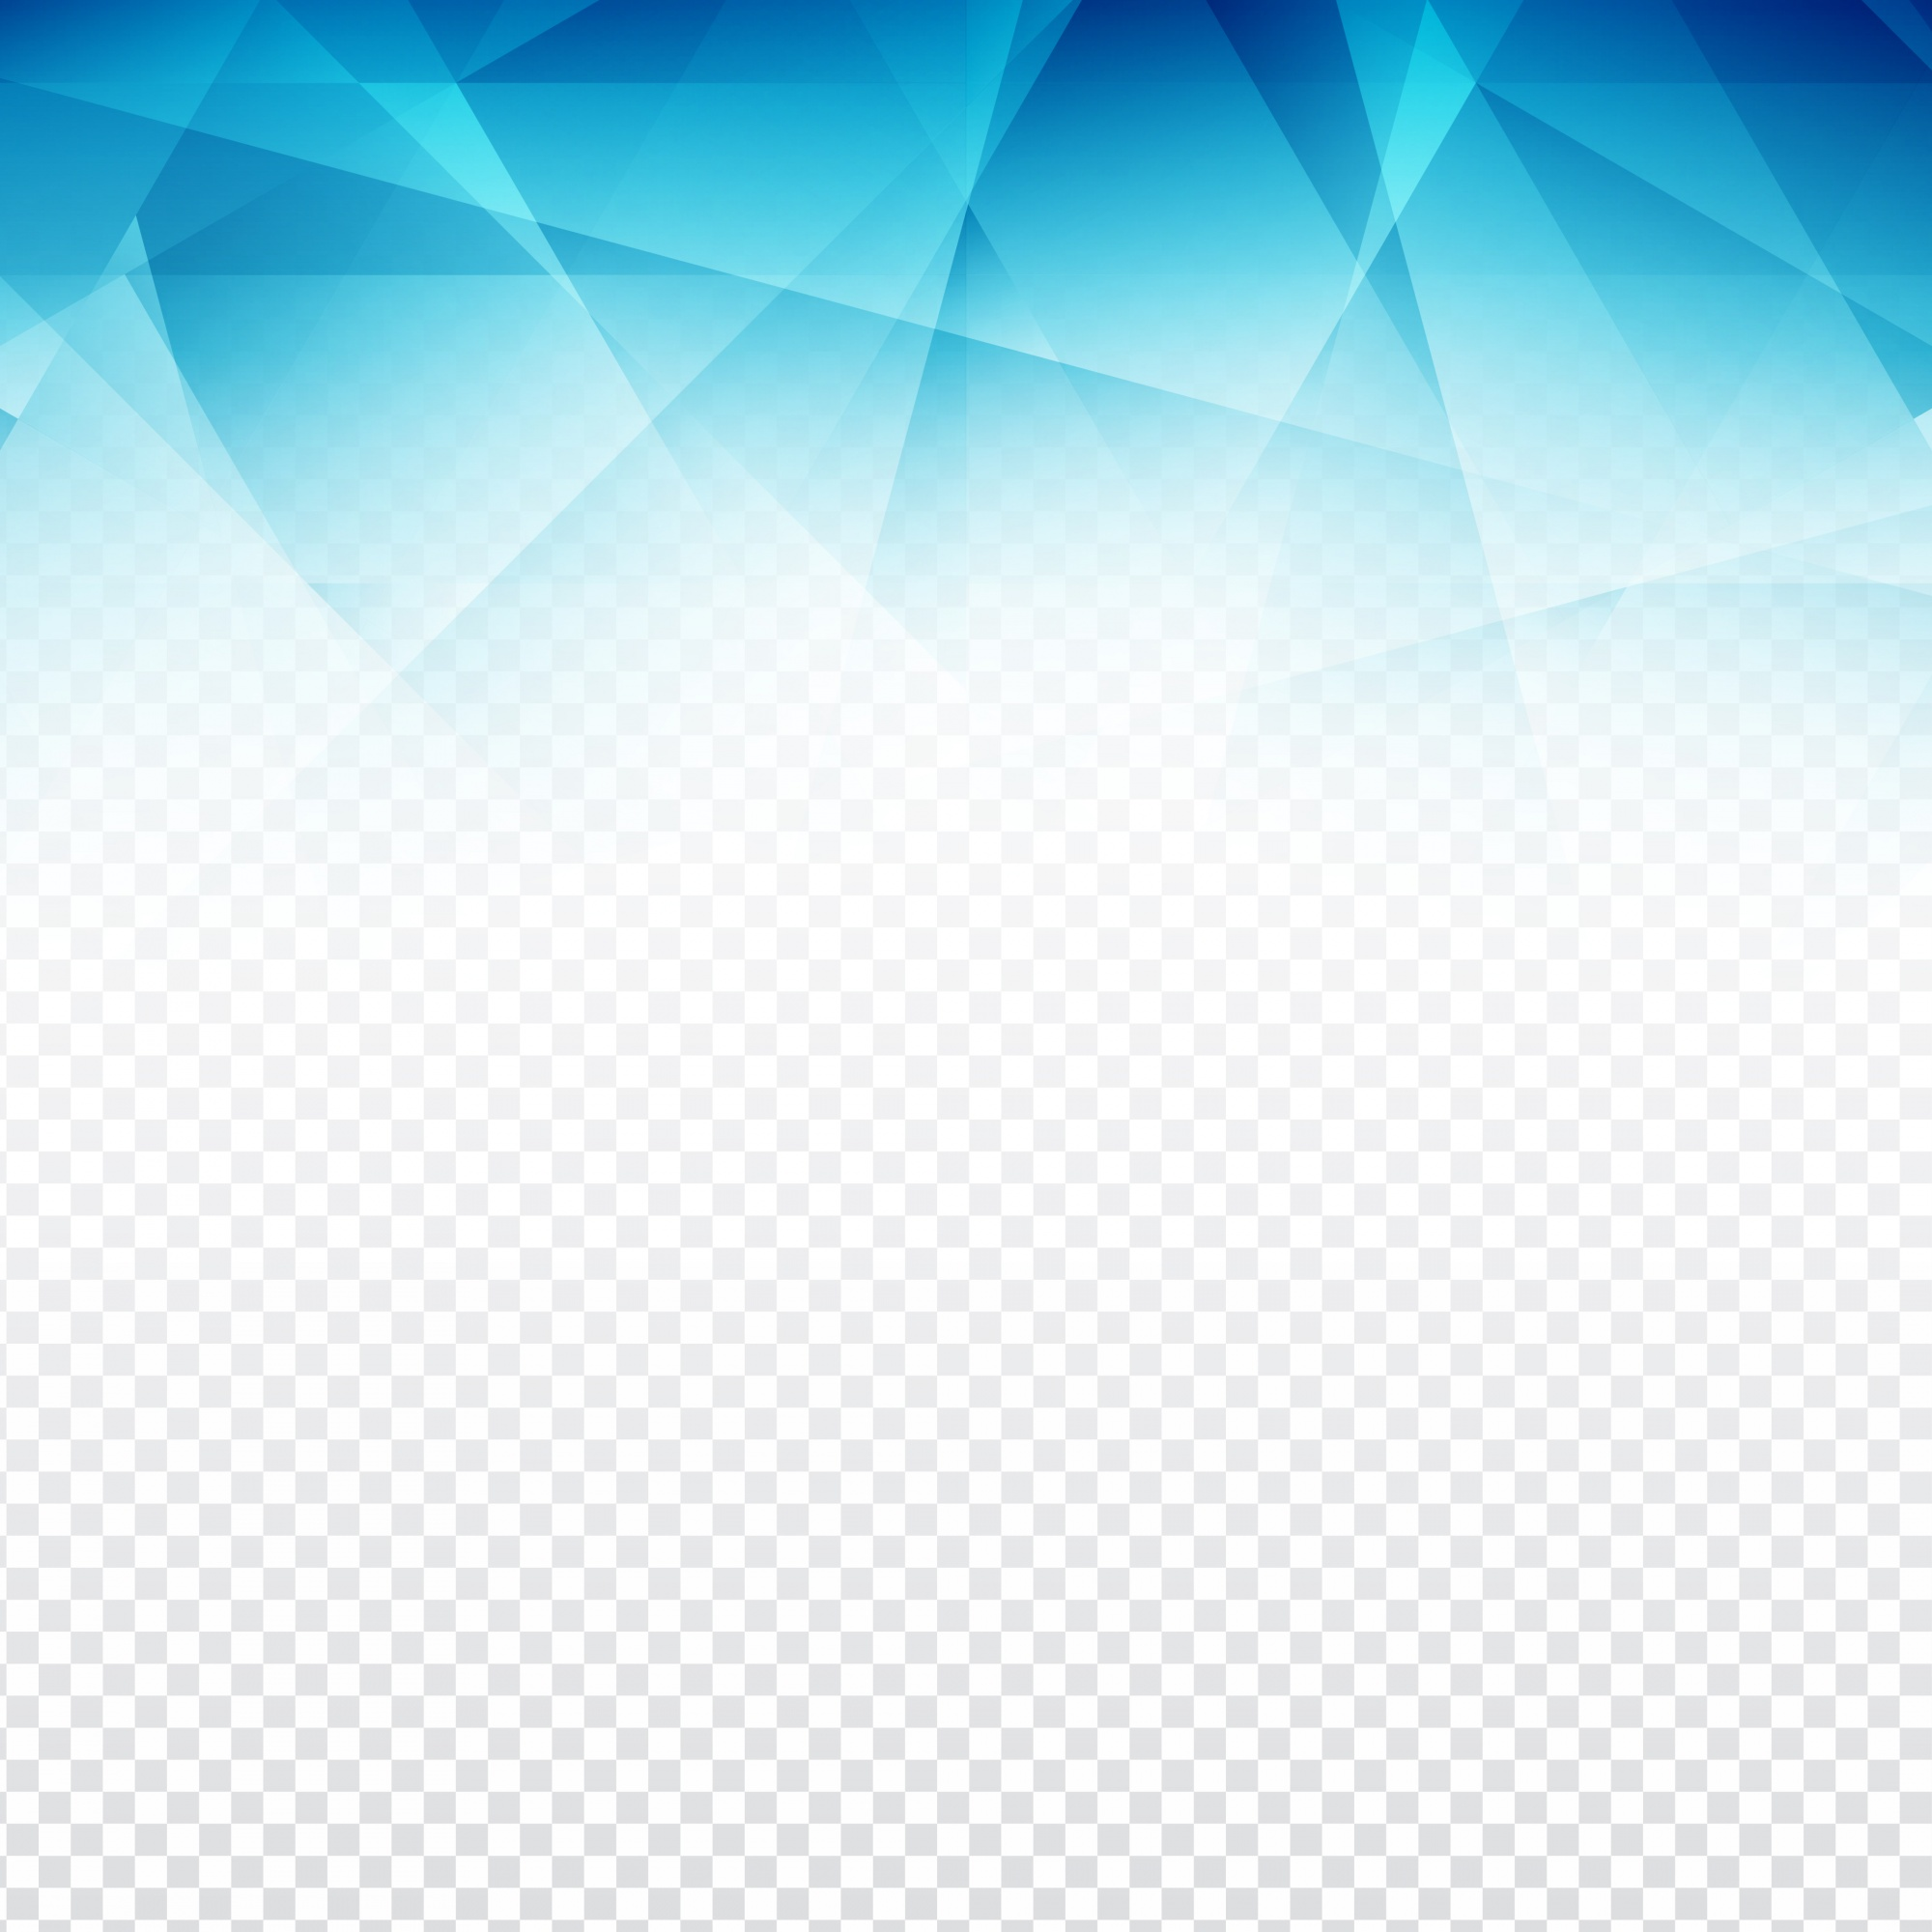 Blue polygonal abstract shapes with a transparent background